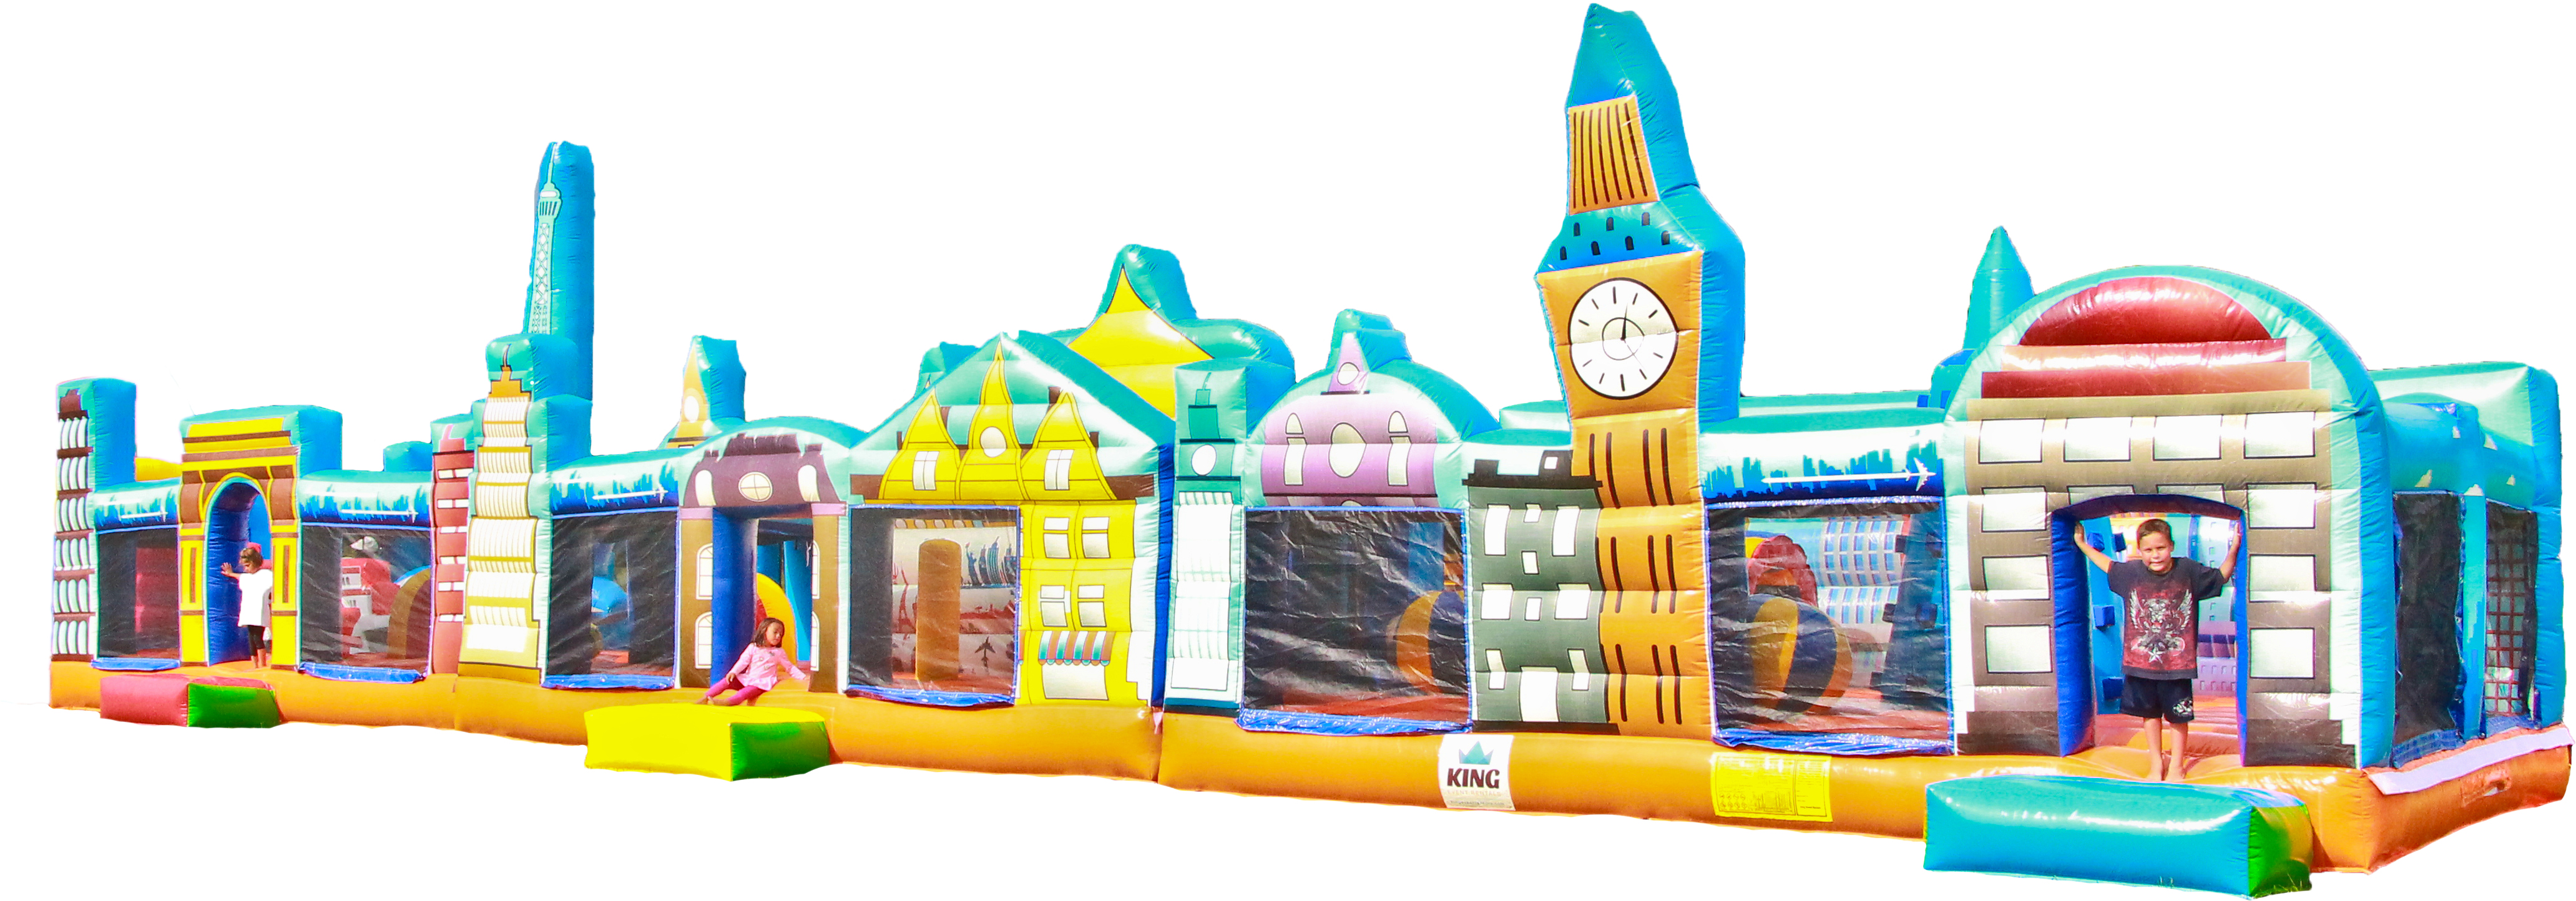 40620427d8dac Obstacle Courses - Bounce House RentalBounce House Rental